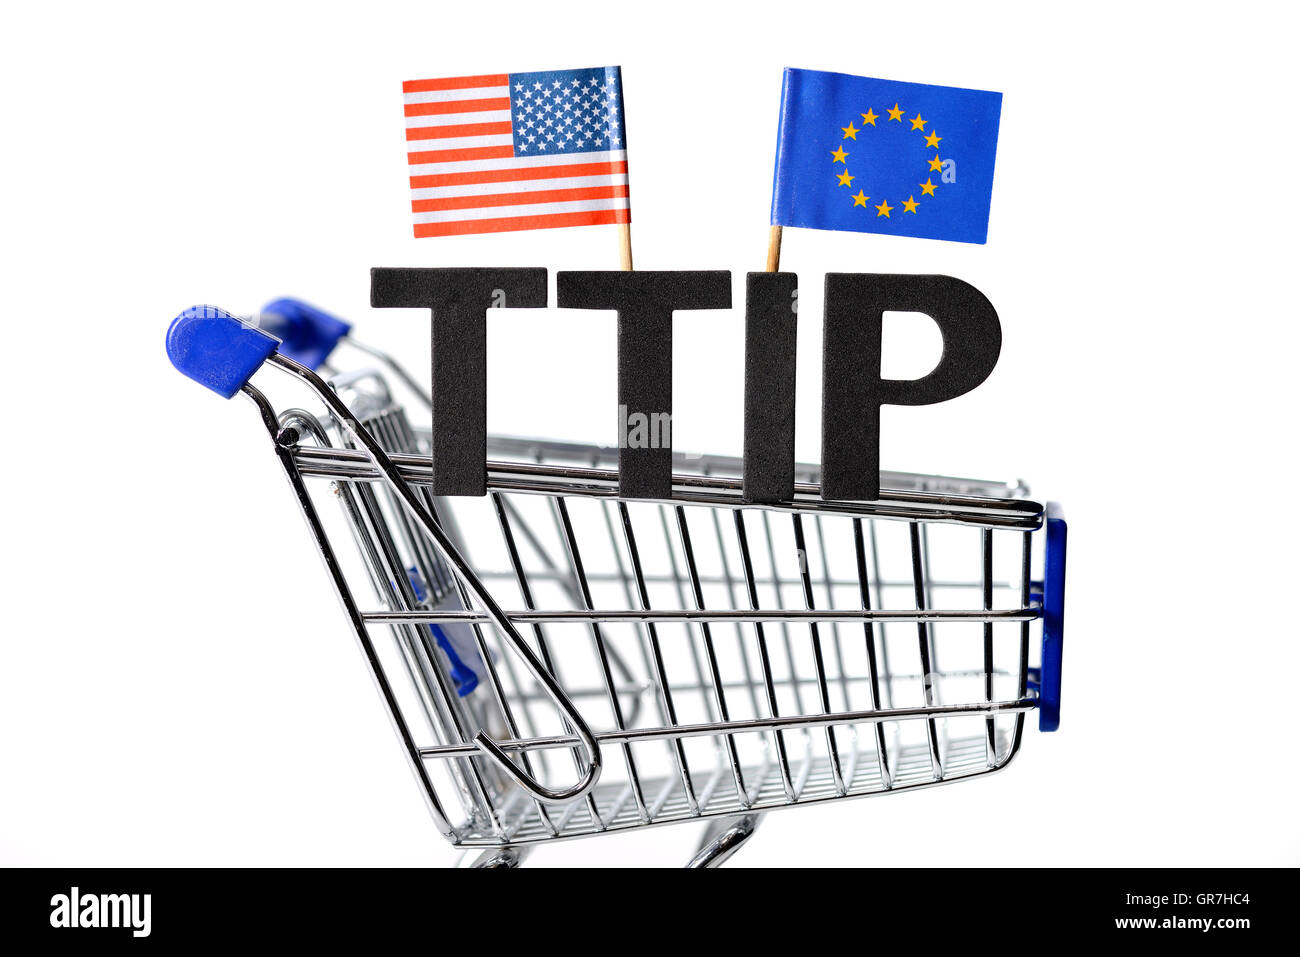 Shopping Cart And Flags Of The Usa And The Eu, Ttip Trade Agreement - Stock Image